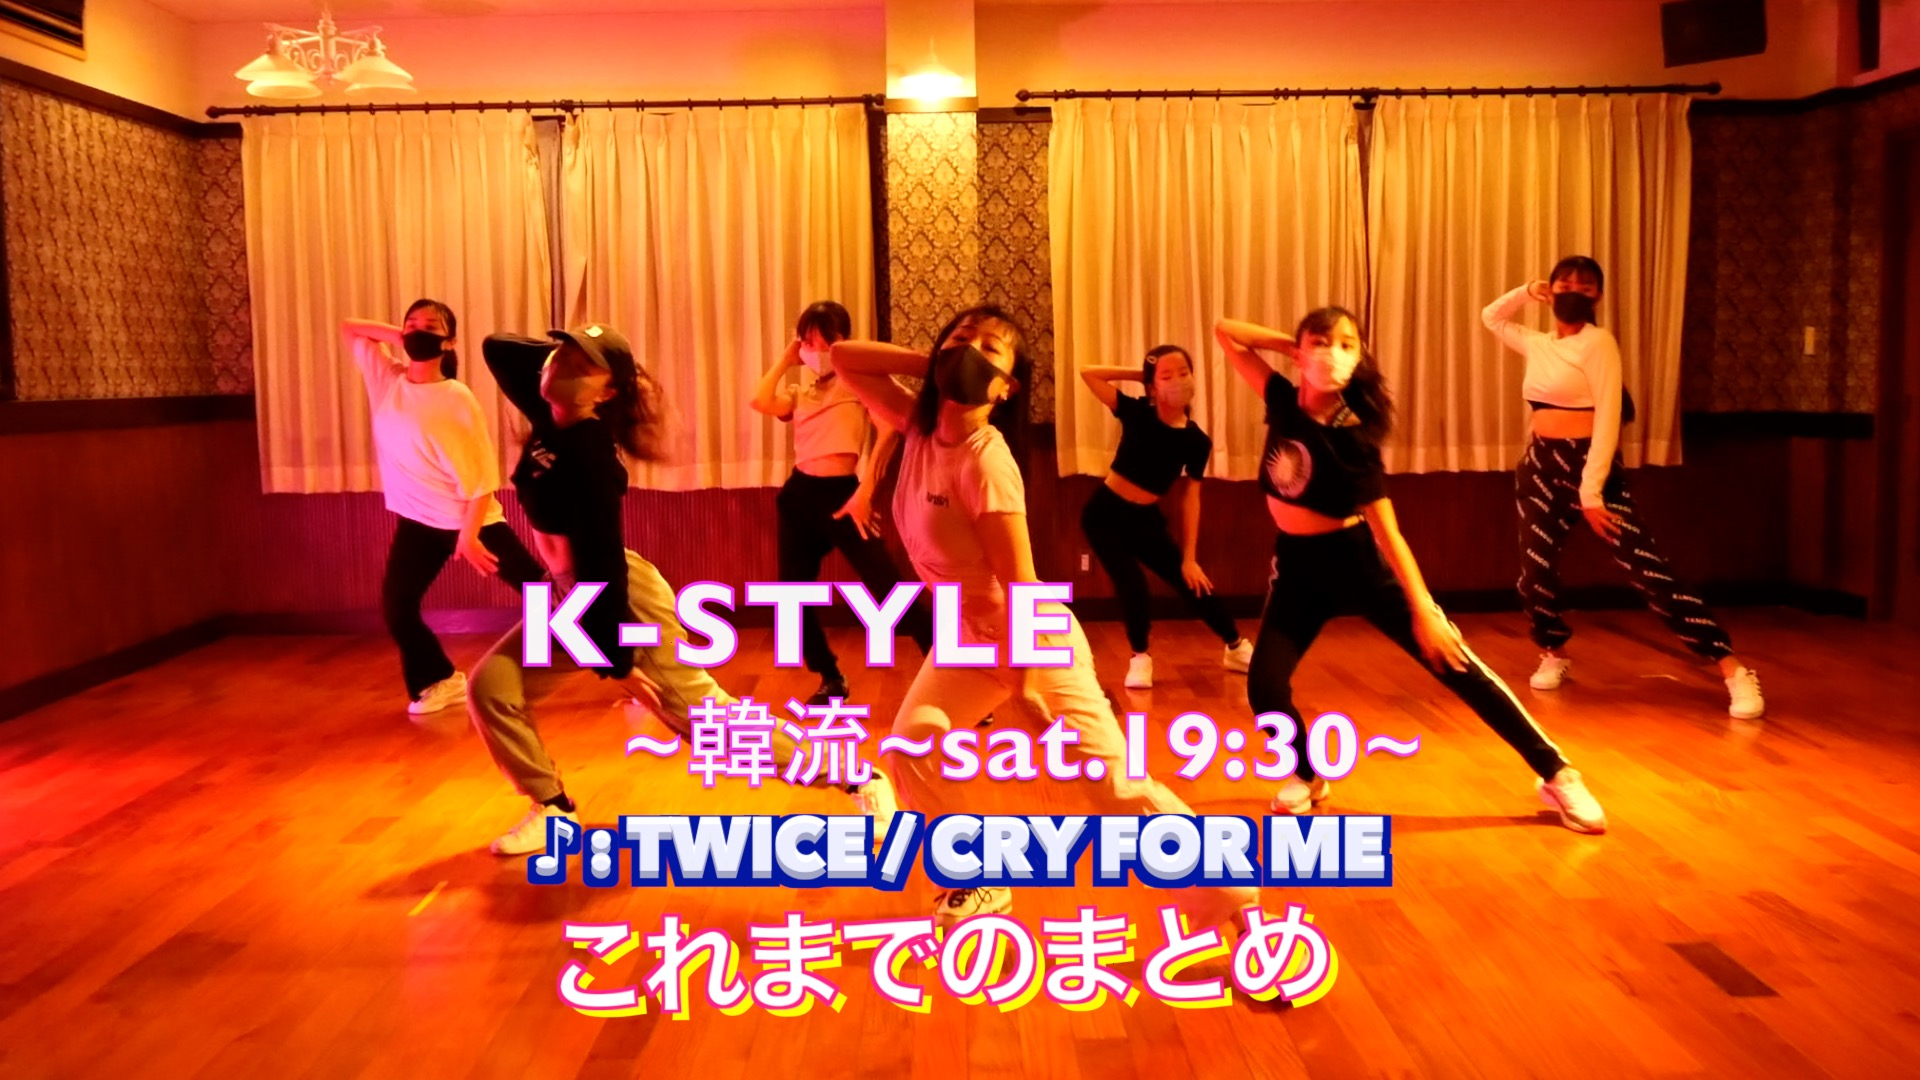 K-POPを踊ってみた(Twice / Cry For Me/K-Style~韓流~クラス)